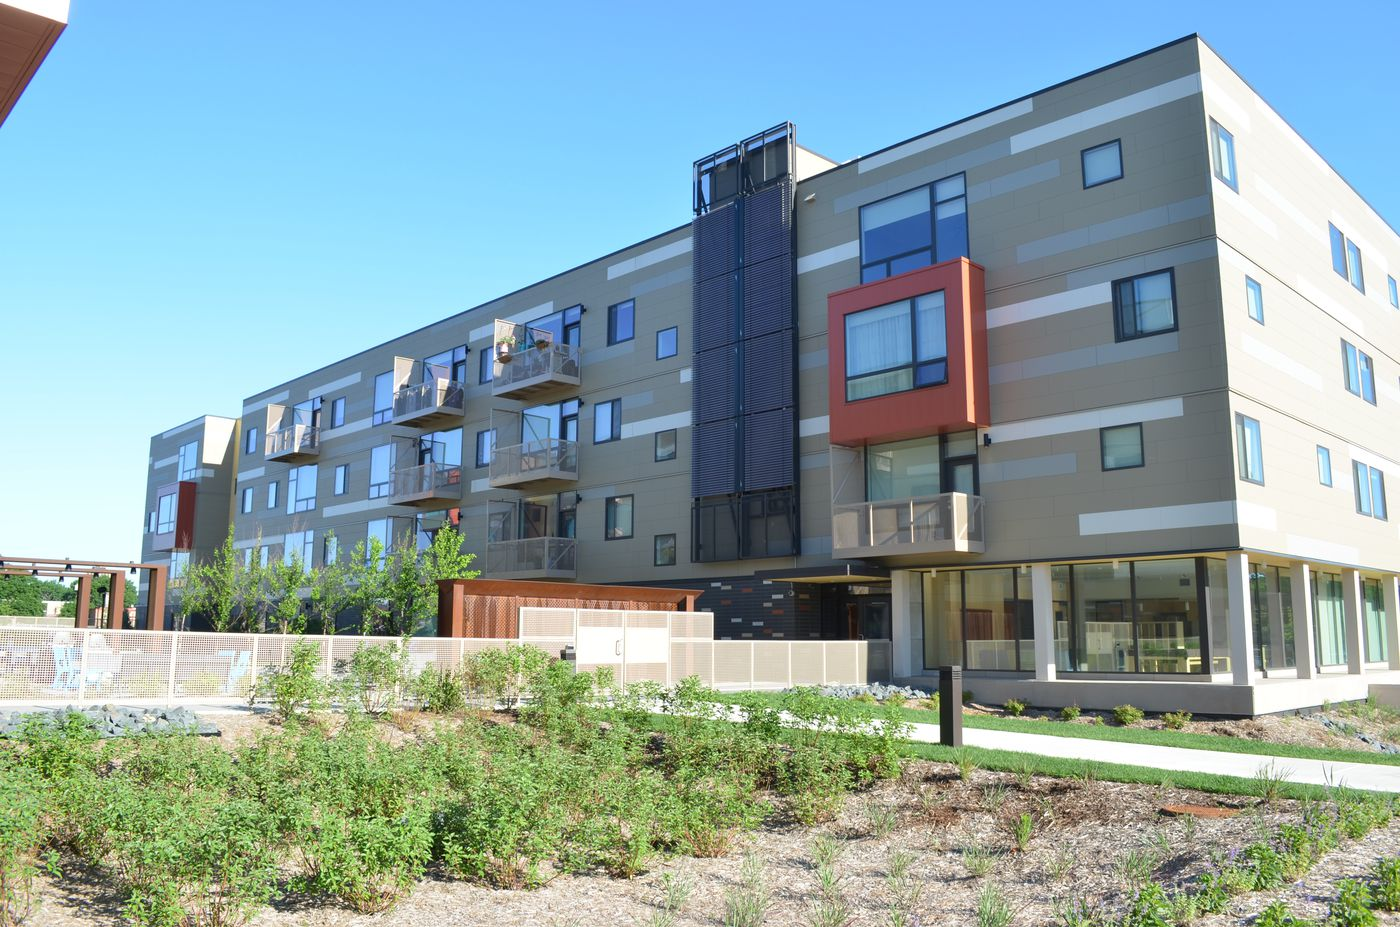 Solving affordable housing: Creative solutions around the